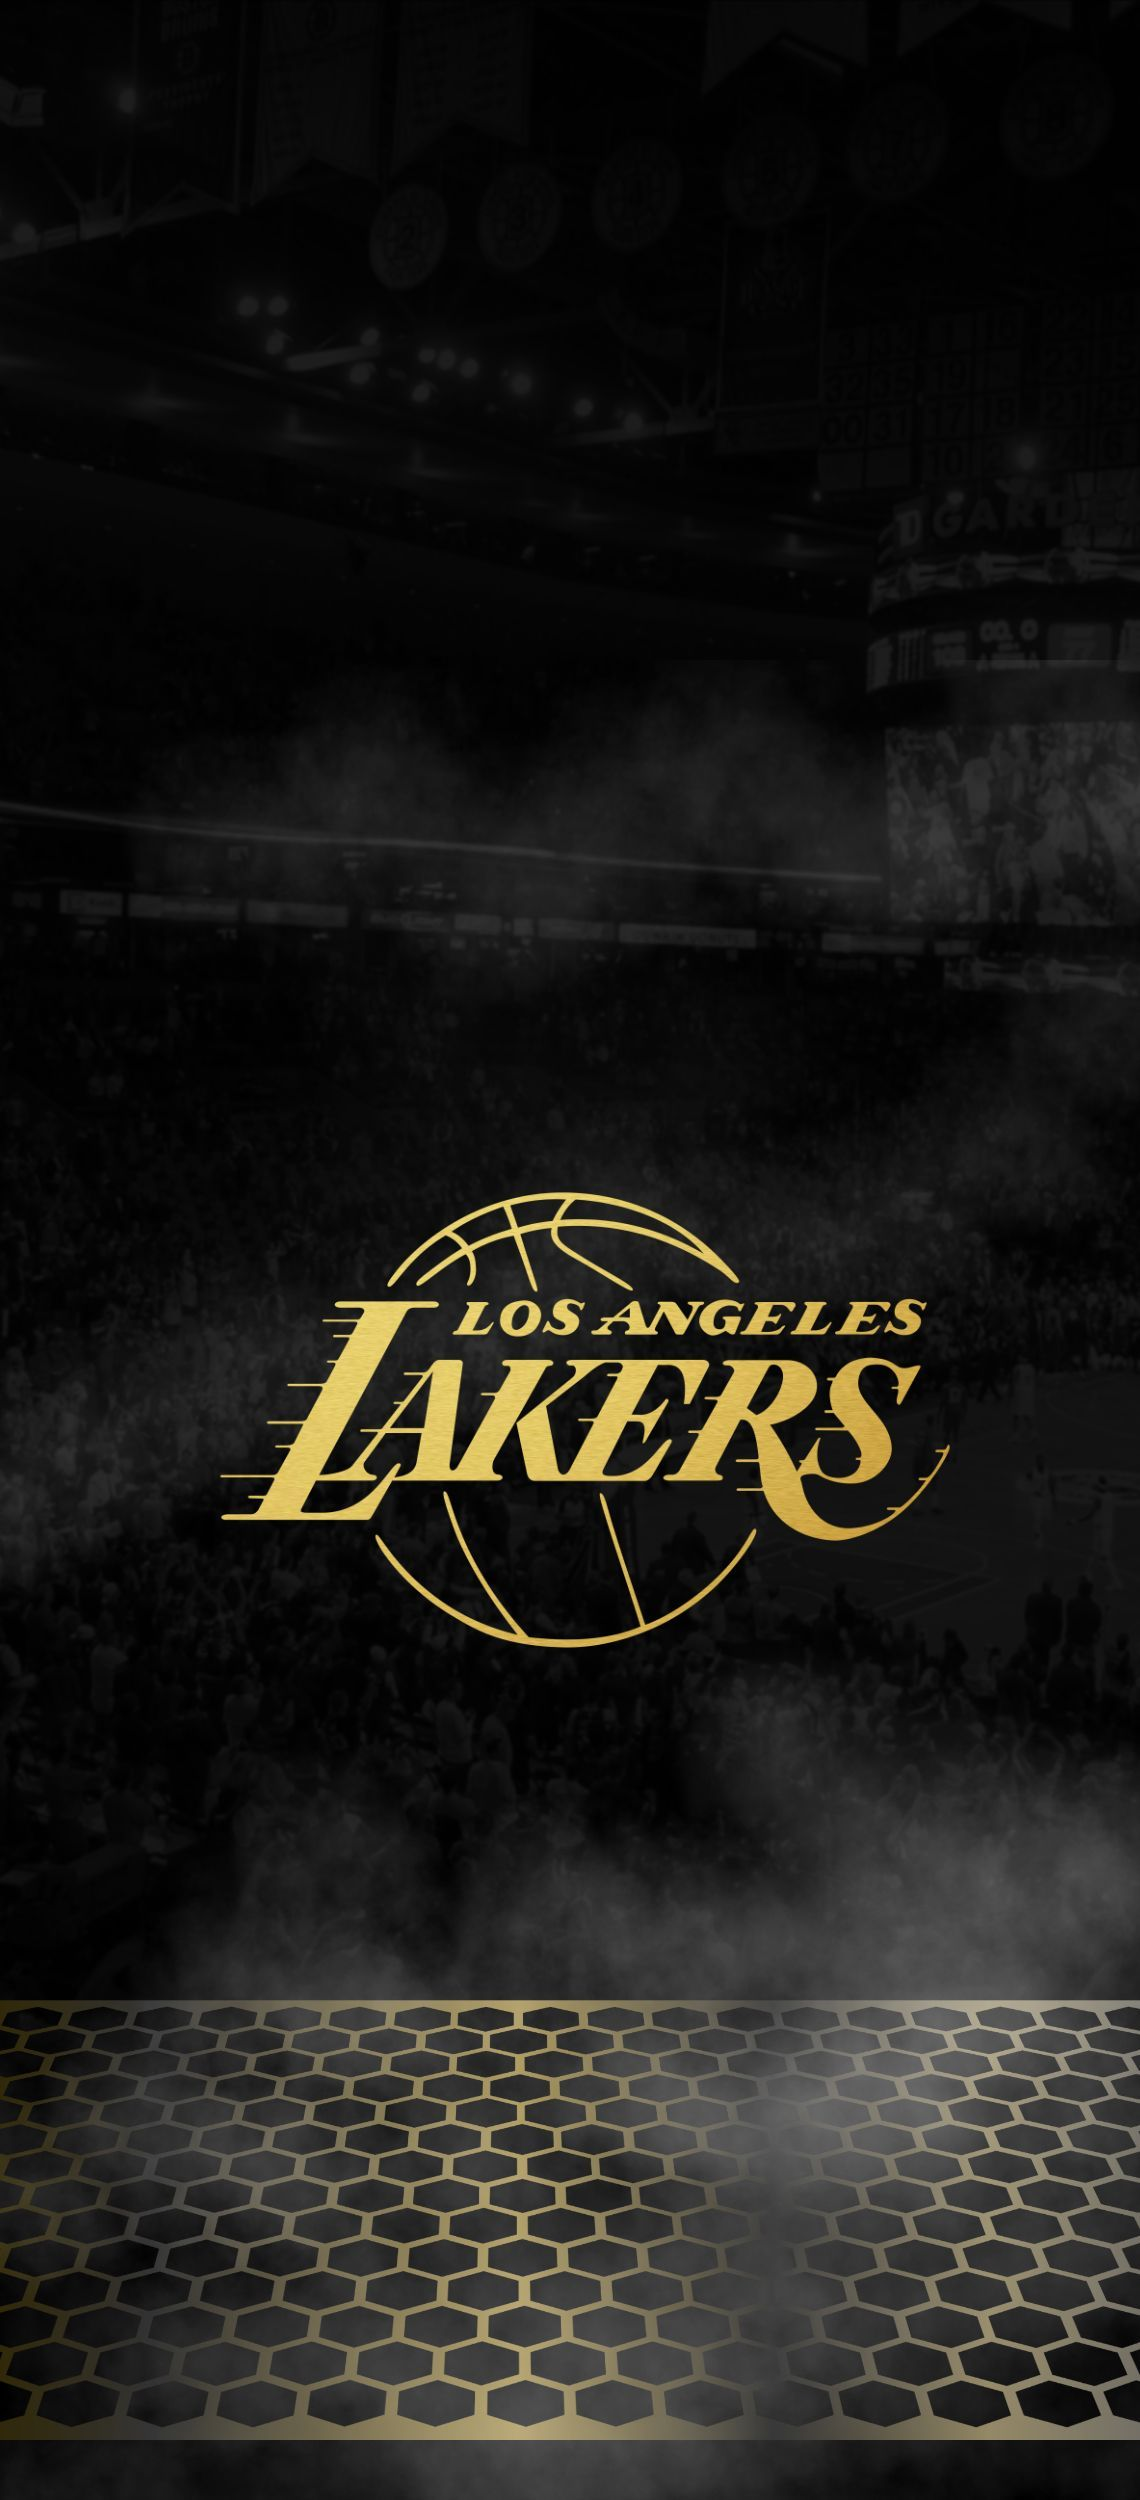 Nfl Angeles Lakers Wallpapers Los Angeles Lakers Wallpapers Los Angeles Lakers Wallpapers Iphone Kob In 2020 Lakers Wallpaper Nba Wallpapers Los Angeles Lakers